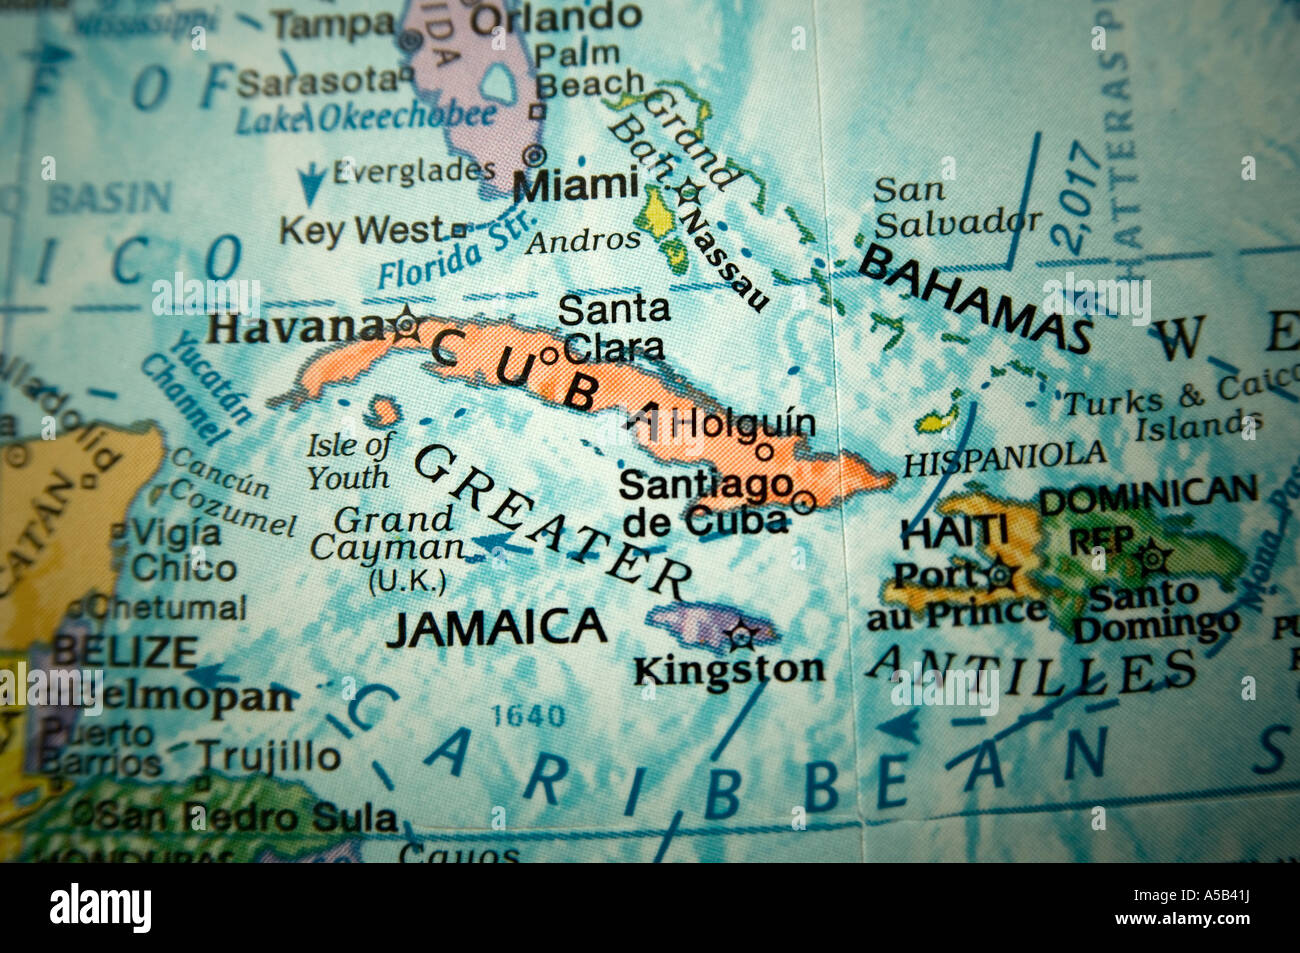 Caribbean map on a globe stock photo 11256461 alamy caribbean map on a globe gumiabroncs Image collections